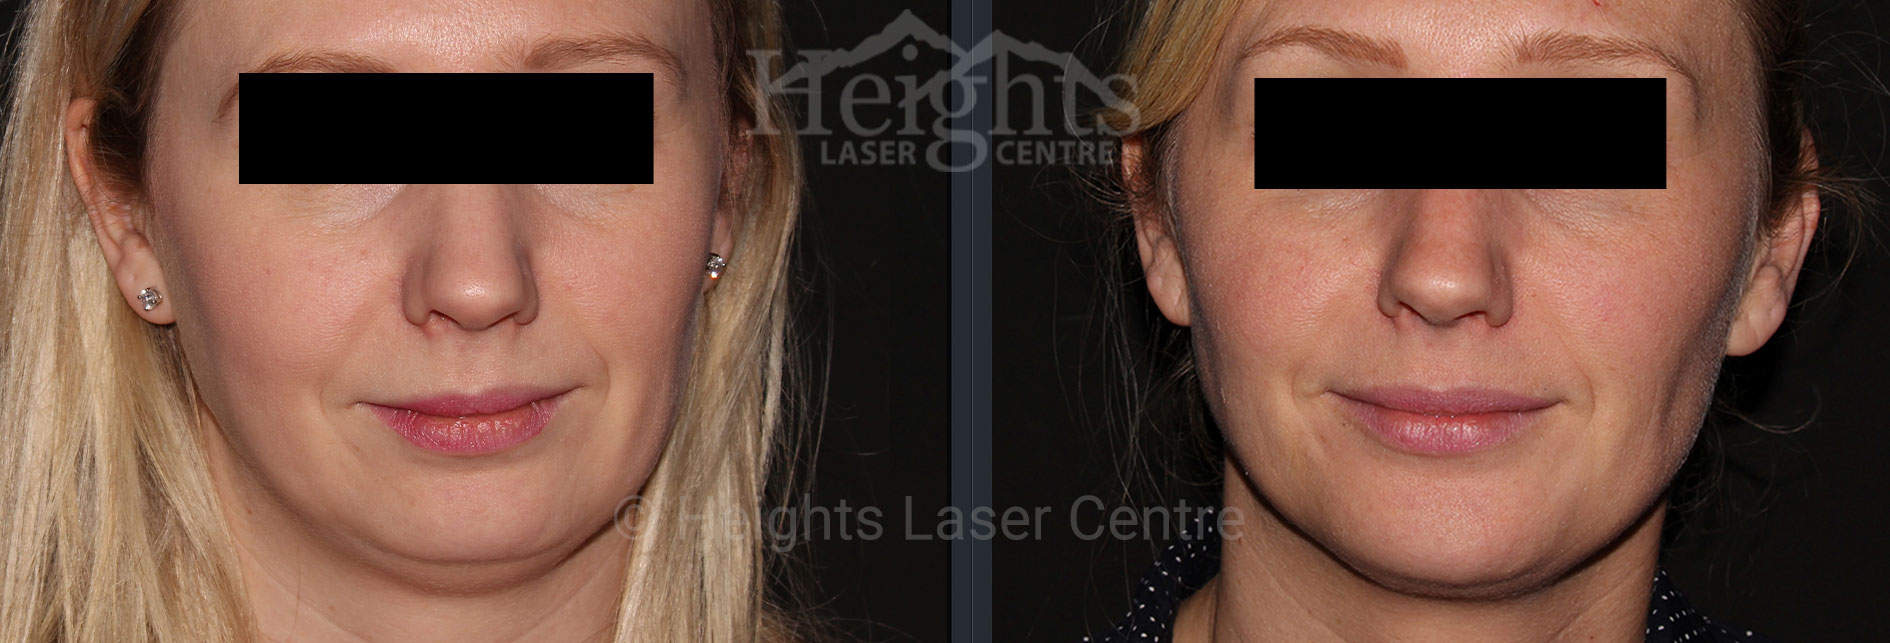 before and after facial rejuvenation belkyra vancouver